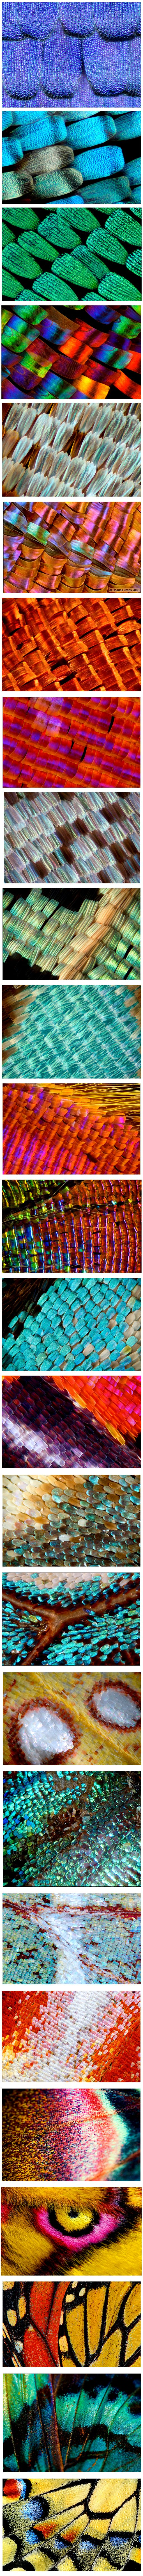 Macro Butterfly Wings (3-20x).